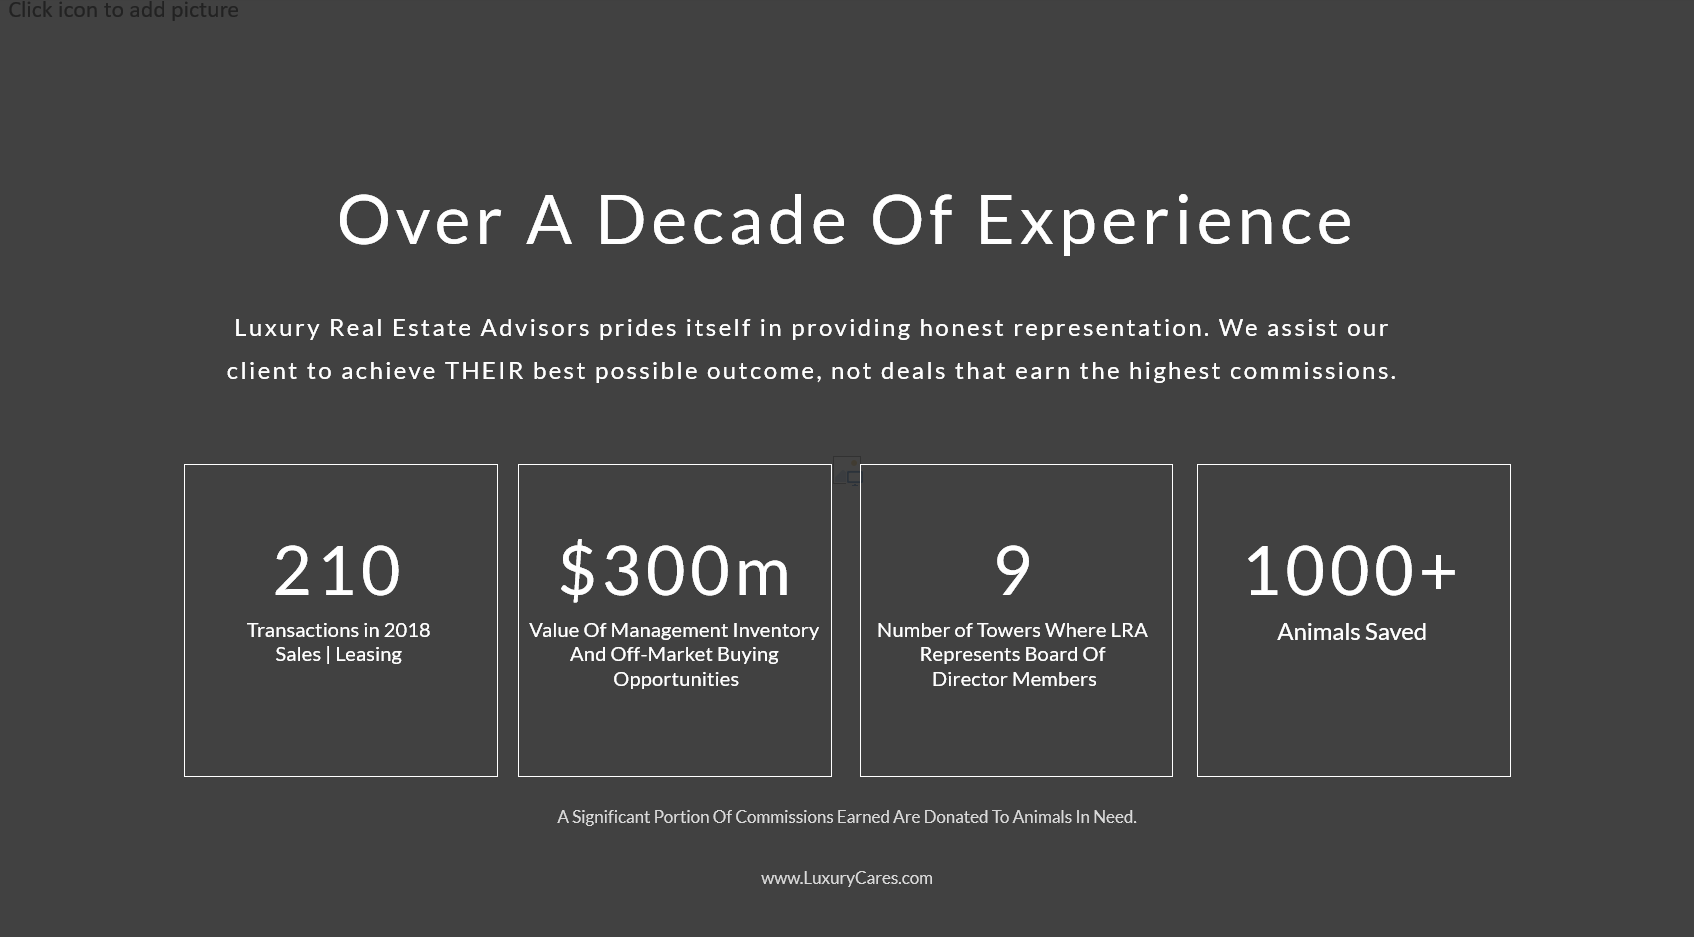 Luxury Real Estate Advisors Experience